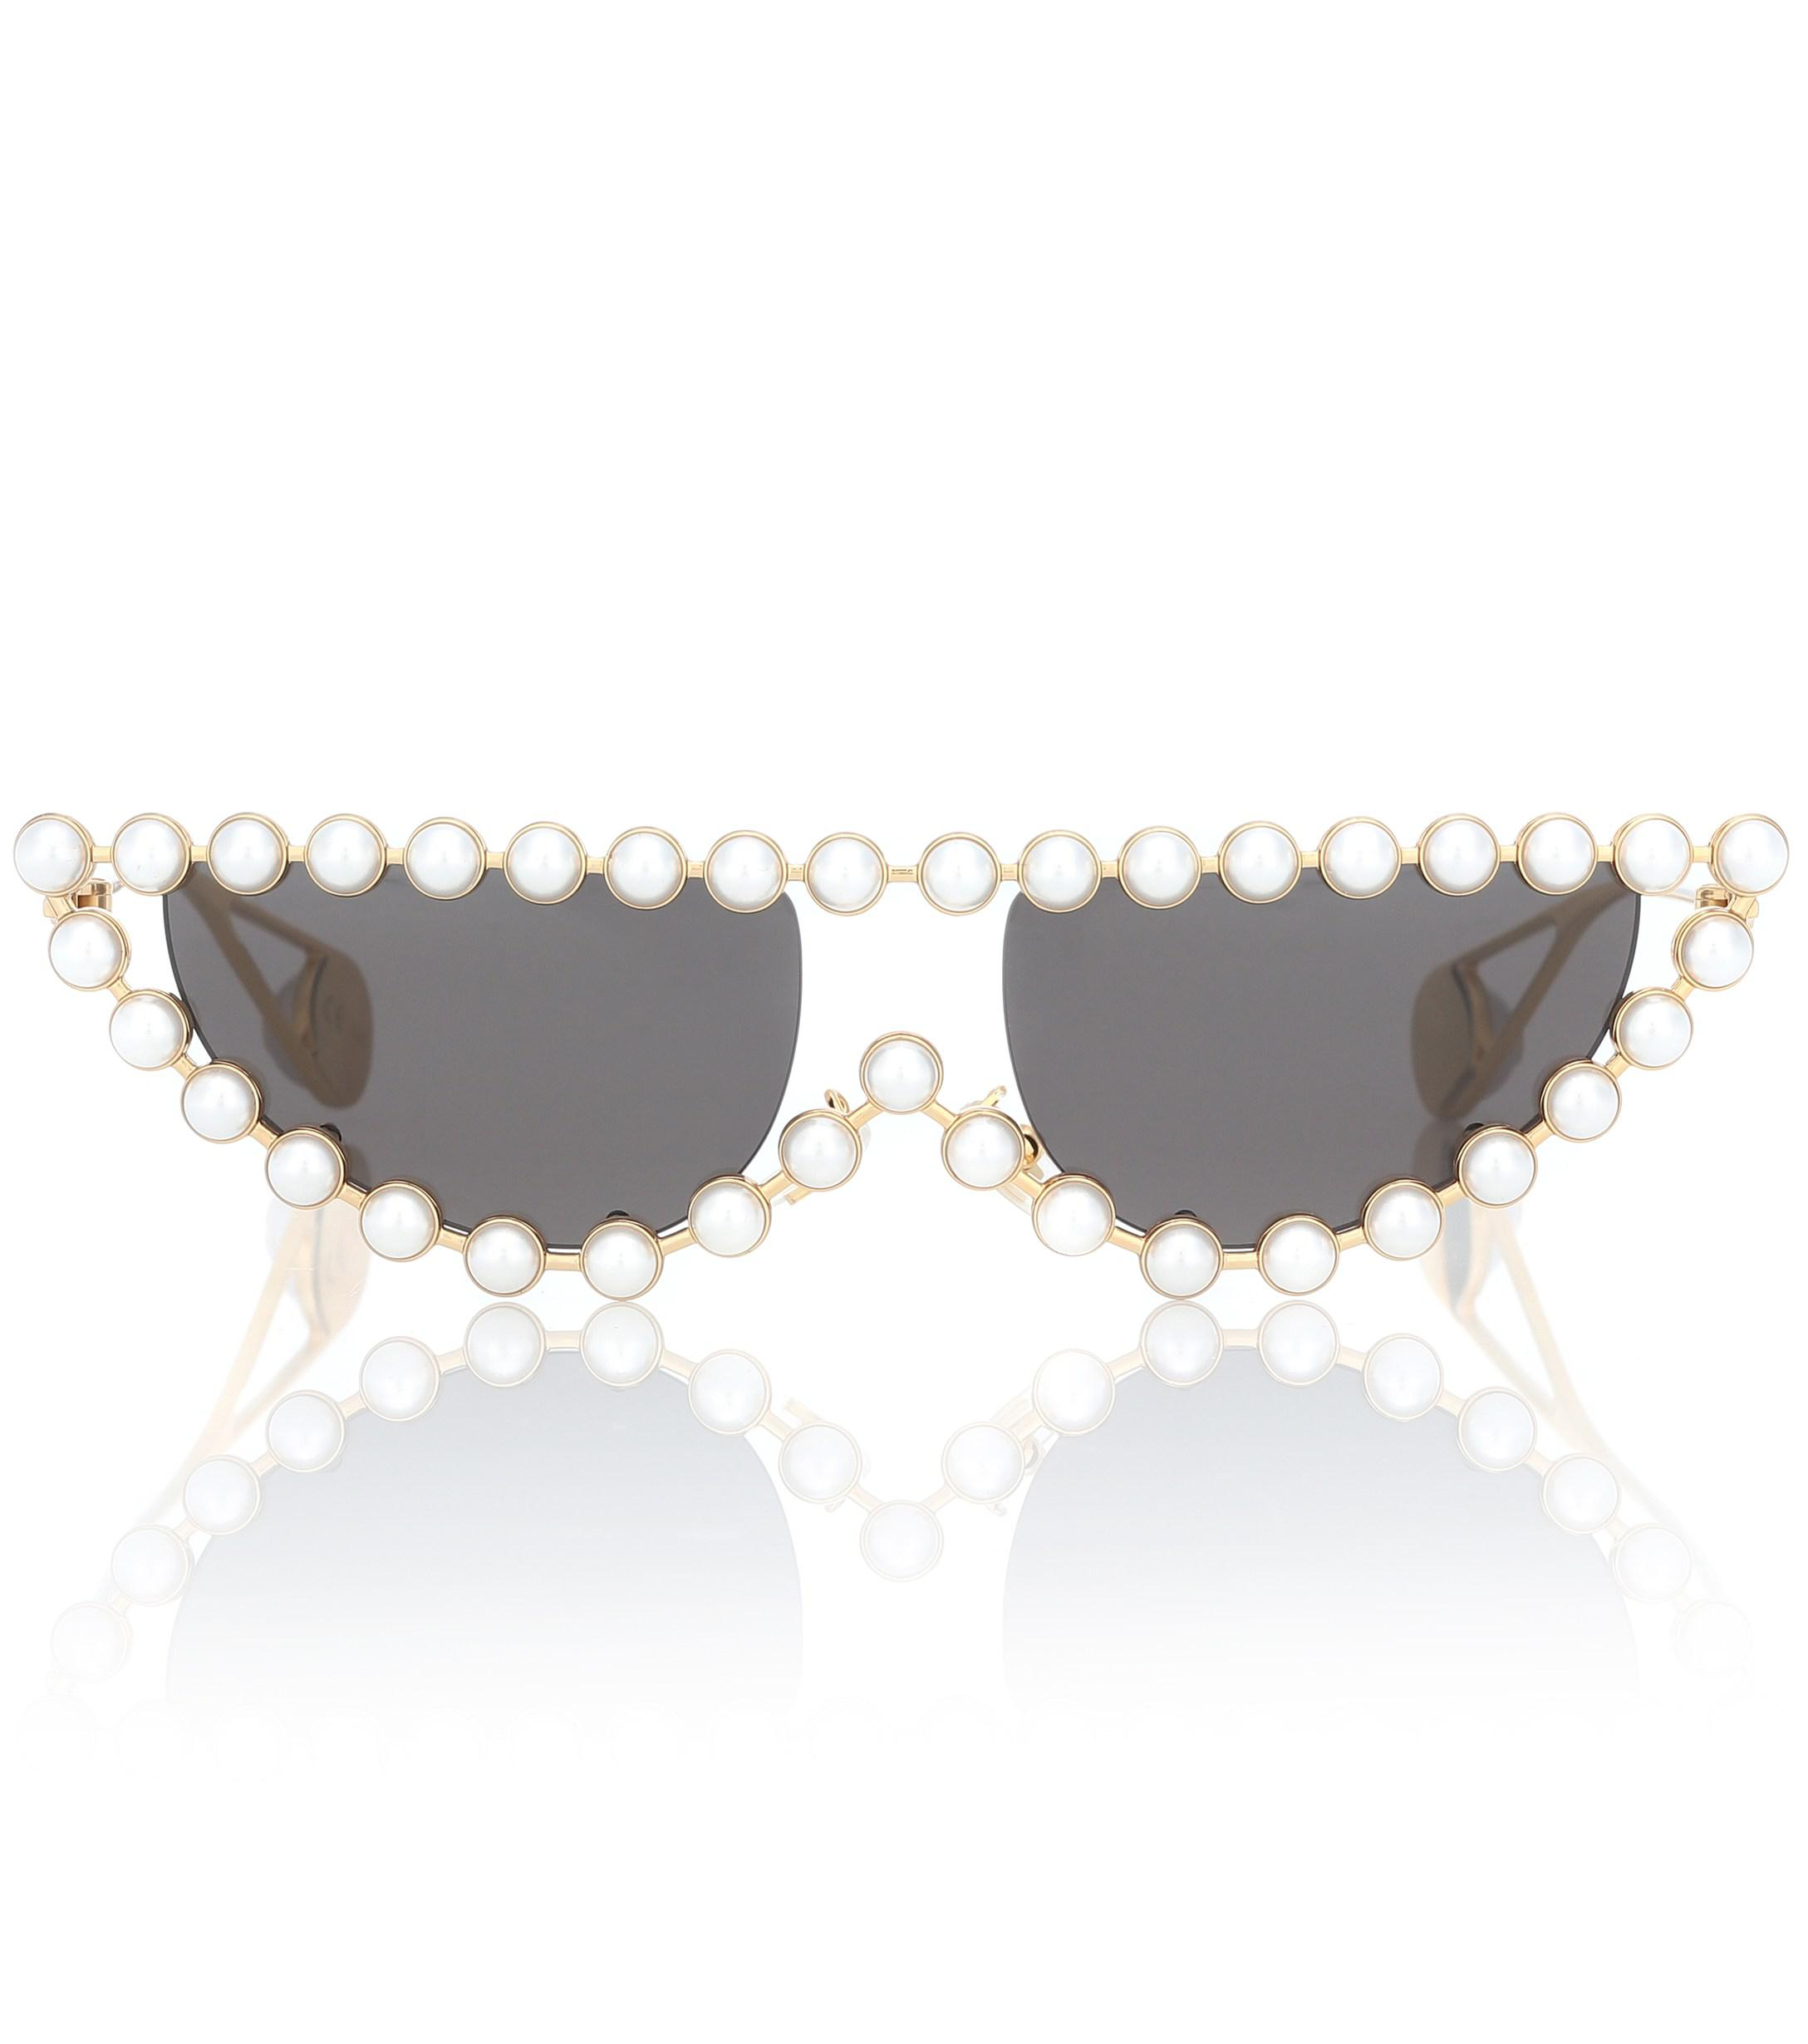 5a2f62dcfc5 Lyst - Gucci Hollywood Forever Cat-eye Sunglasses in Metallic